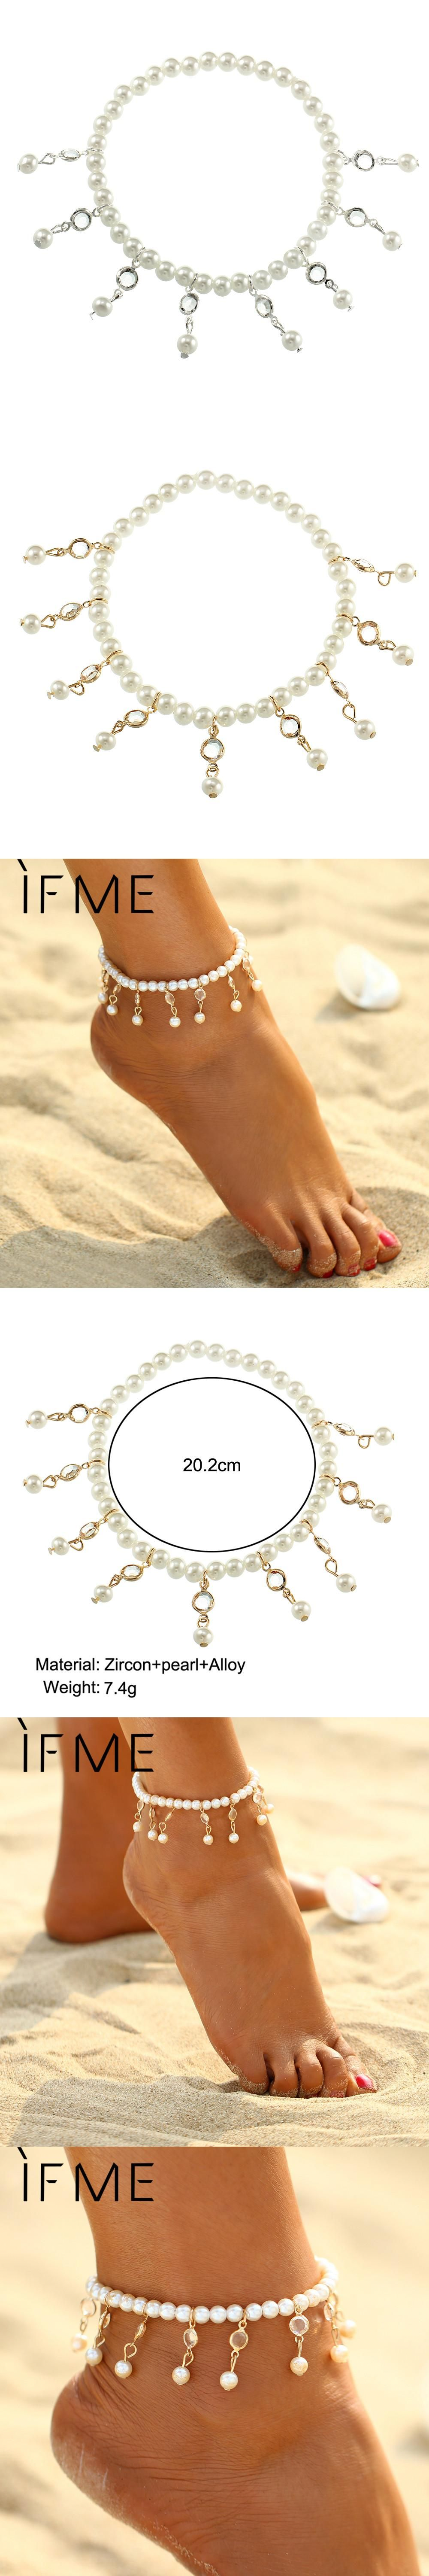 tribal jewelry anklet beaded foot sun wedding sandals hippie sandal orange toe crochet pin barefoot mandala